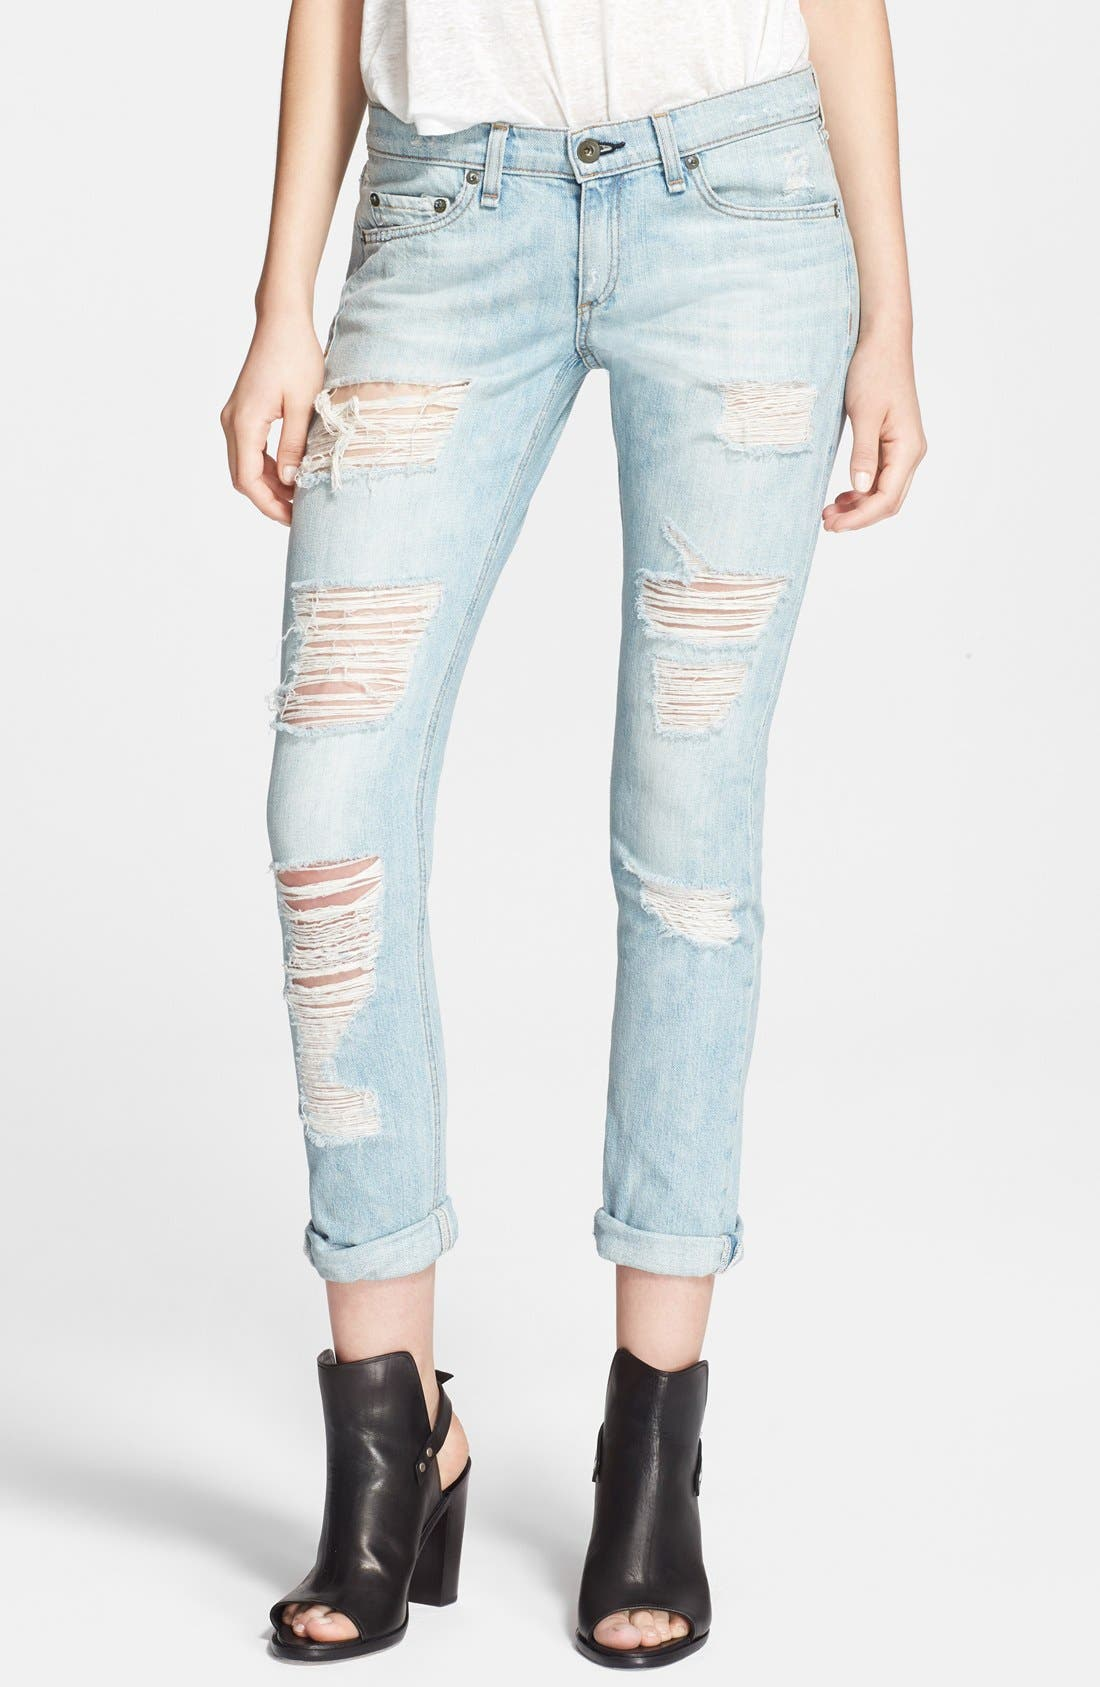 'The Dre' Distressed Skinny Boyfriend Jeans,                             Main thumbnail 1, color,                             455